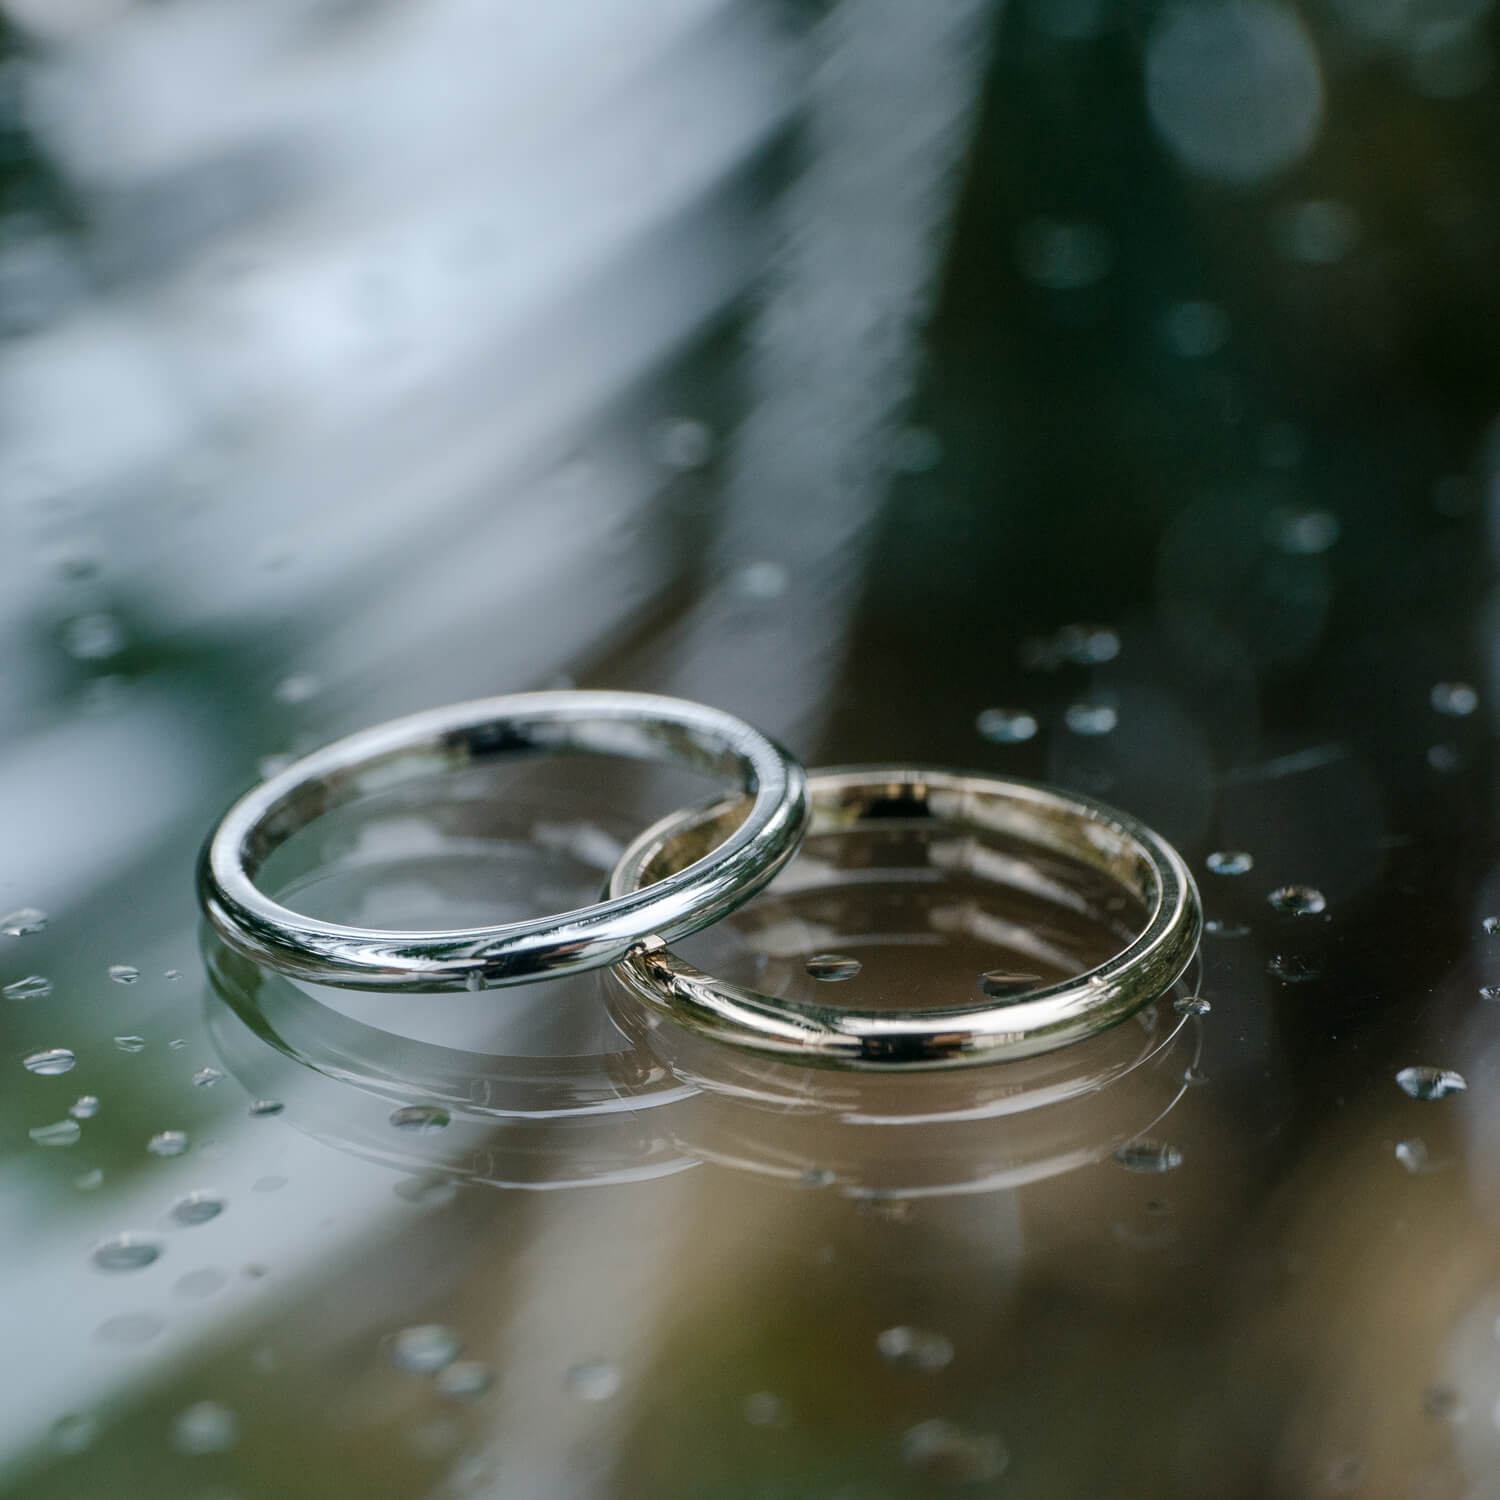 Making wedding rings in the spring time of Yakushima Island